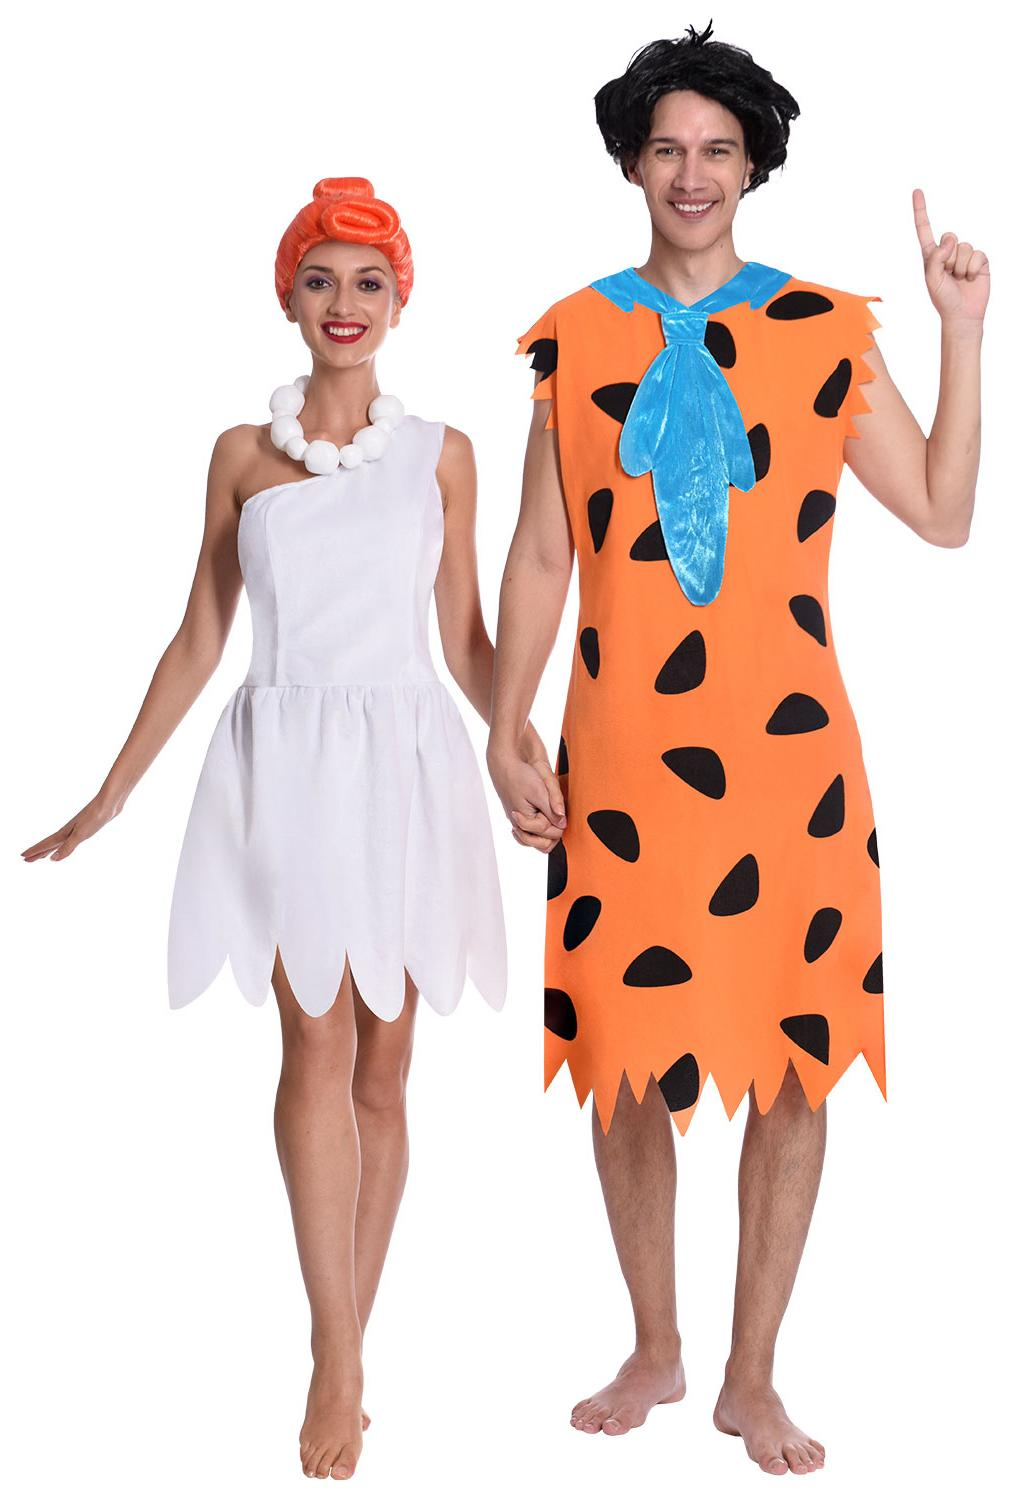 Fred & Wilma Flintstone Couples Costume